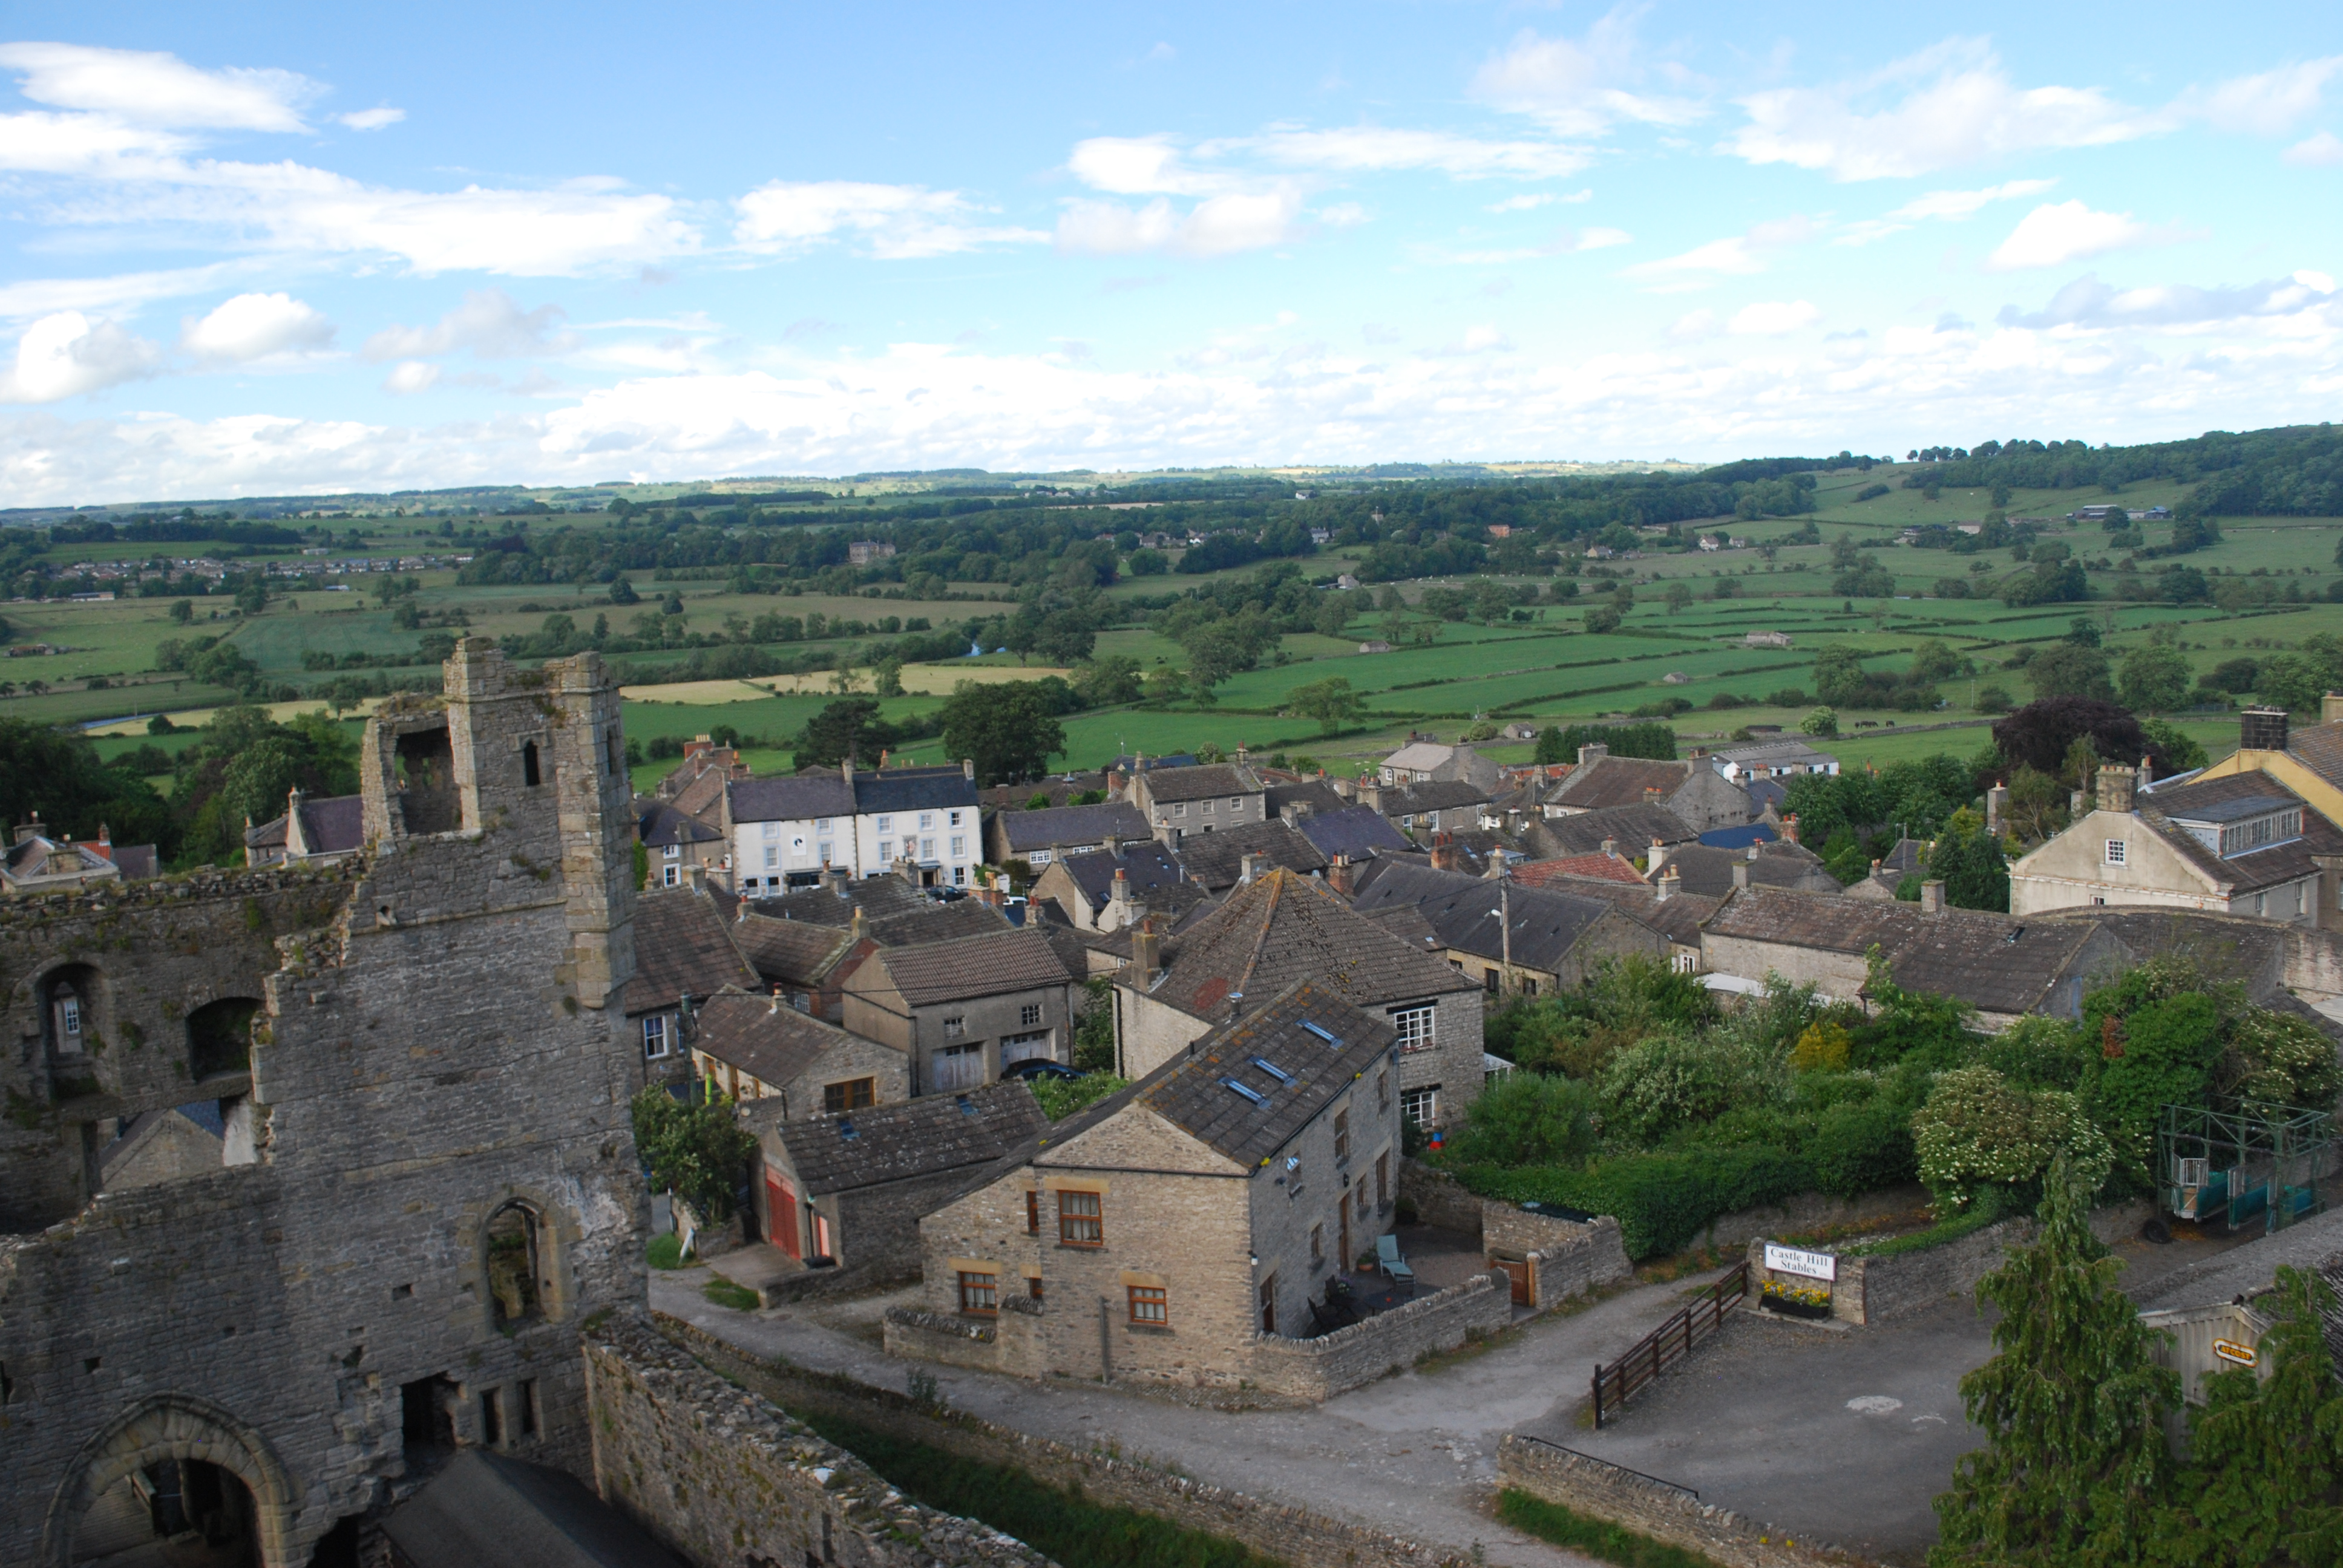 View of Middleham from the Castle